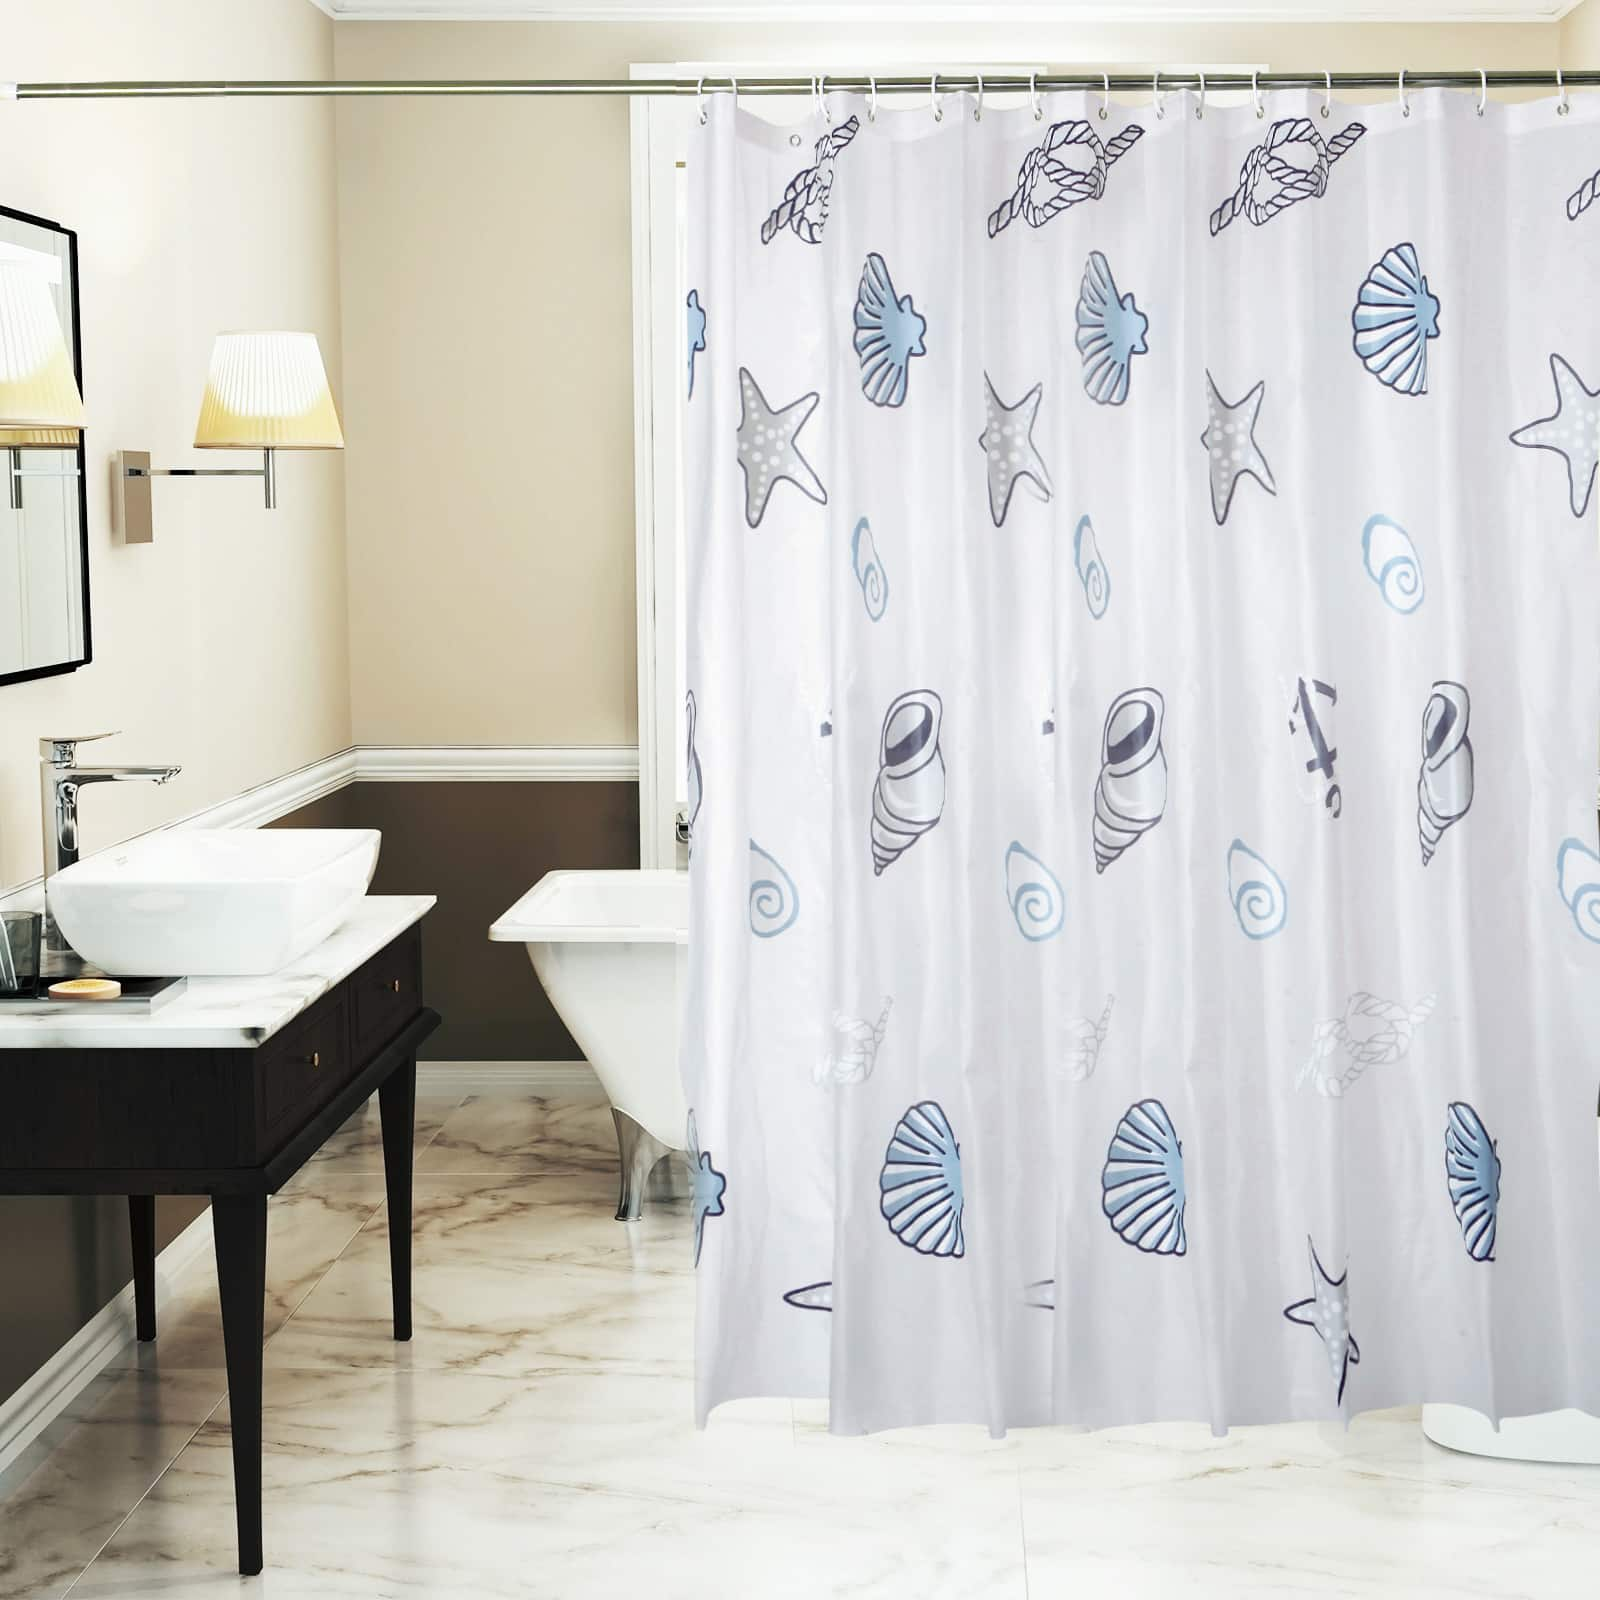 Get a Yivion Mildew Resistant Waterproof Shower Curtain with 12 Curtain Hooks for ONLY $6.99  After Stacking Promotions!